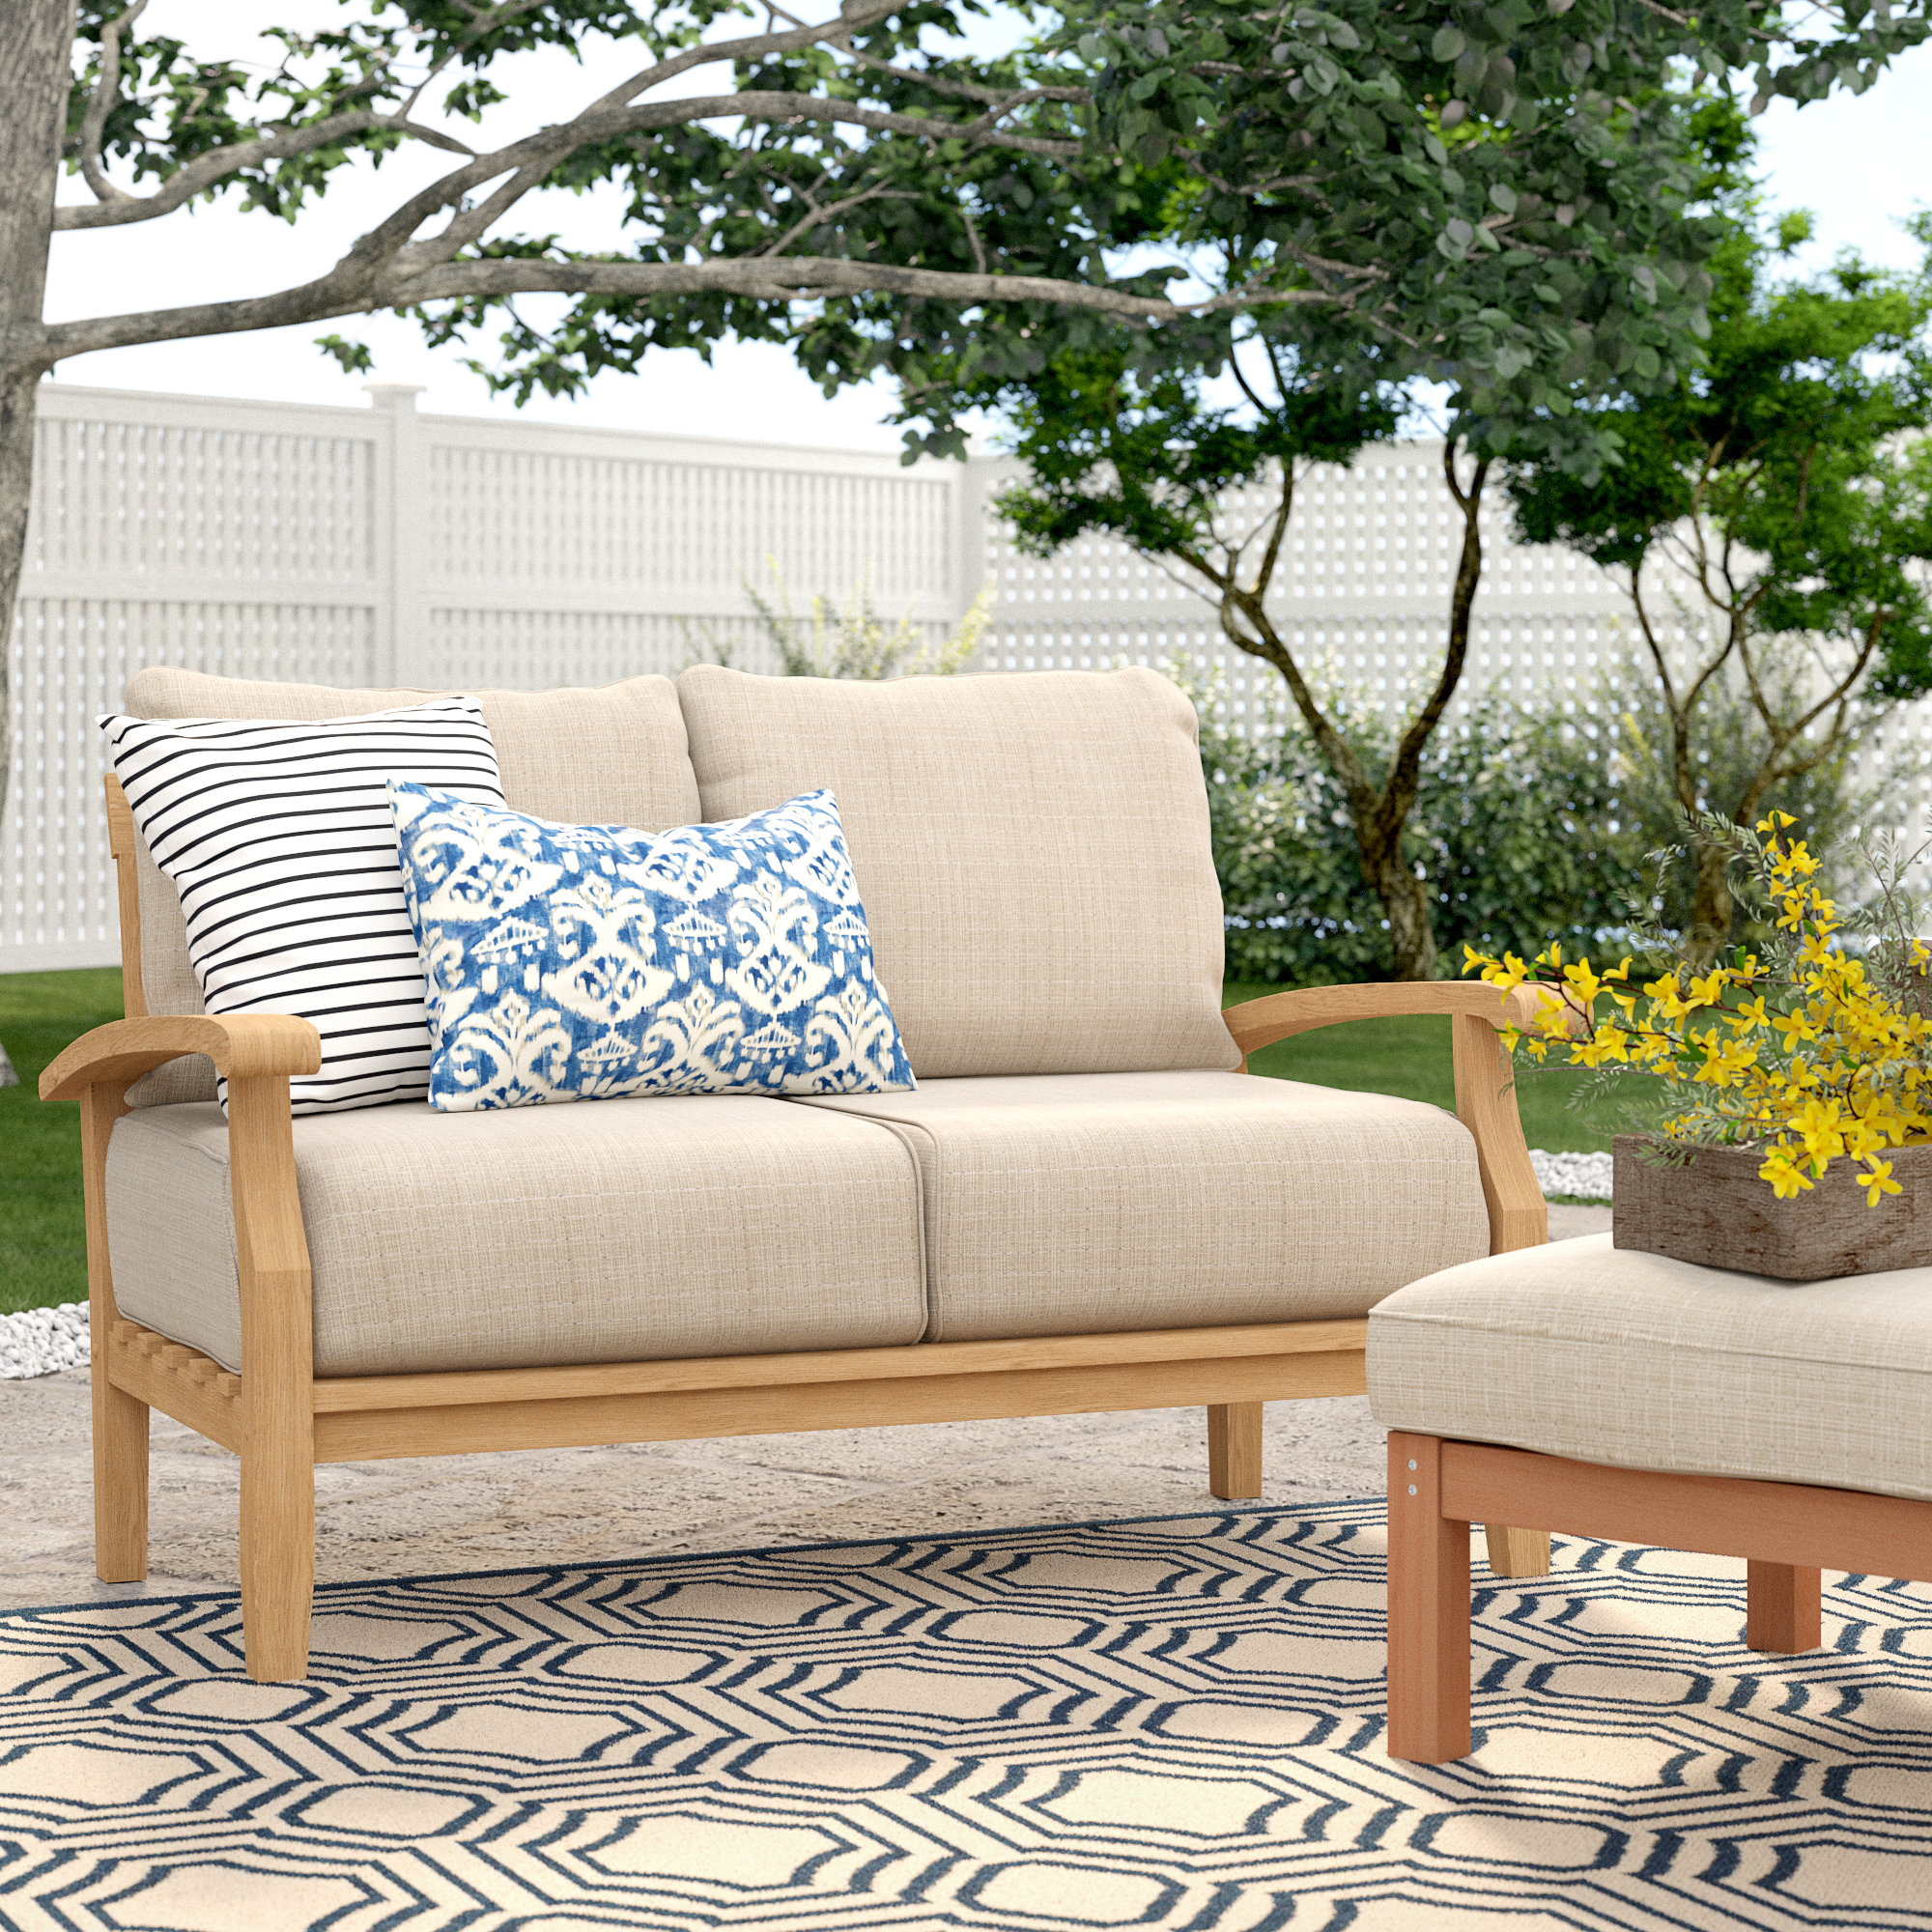 Current Clary Teak Lounge Patio Daybeds With Cushion In Farmhouse & Rustic Teak Outdoor Furniture (View 9 of 20)